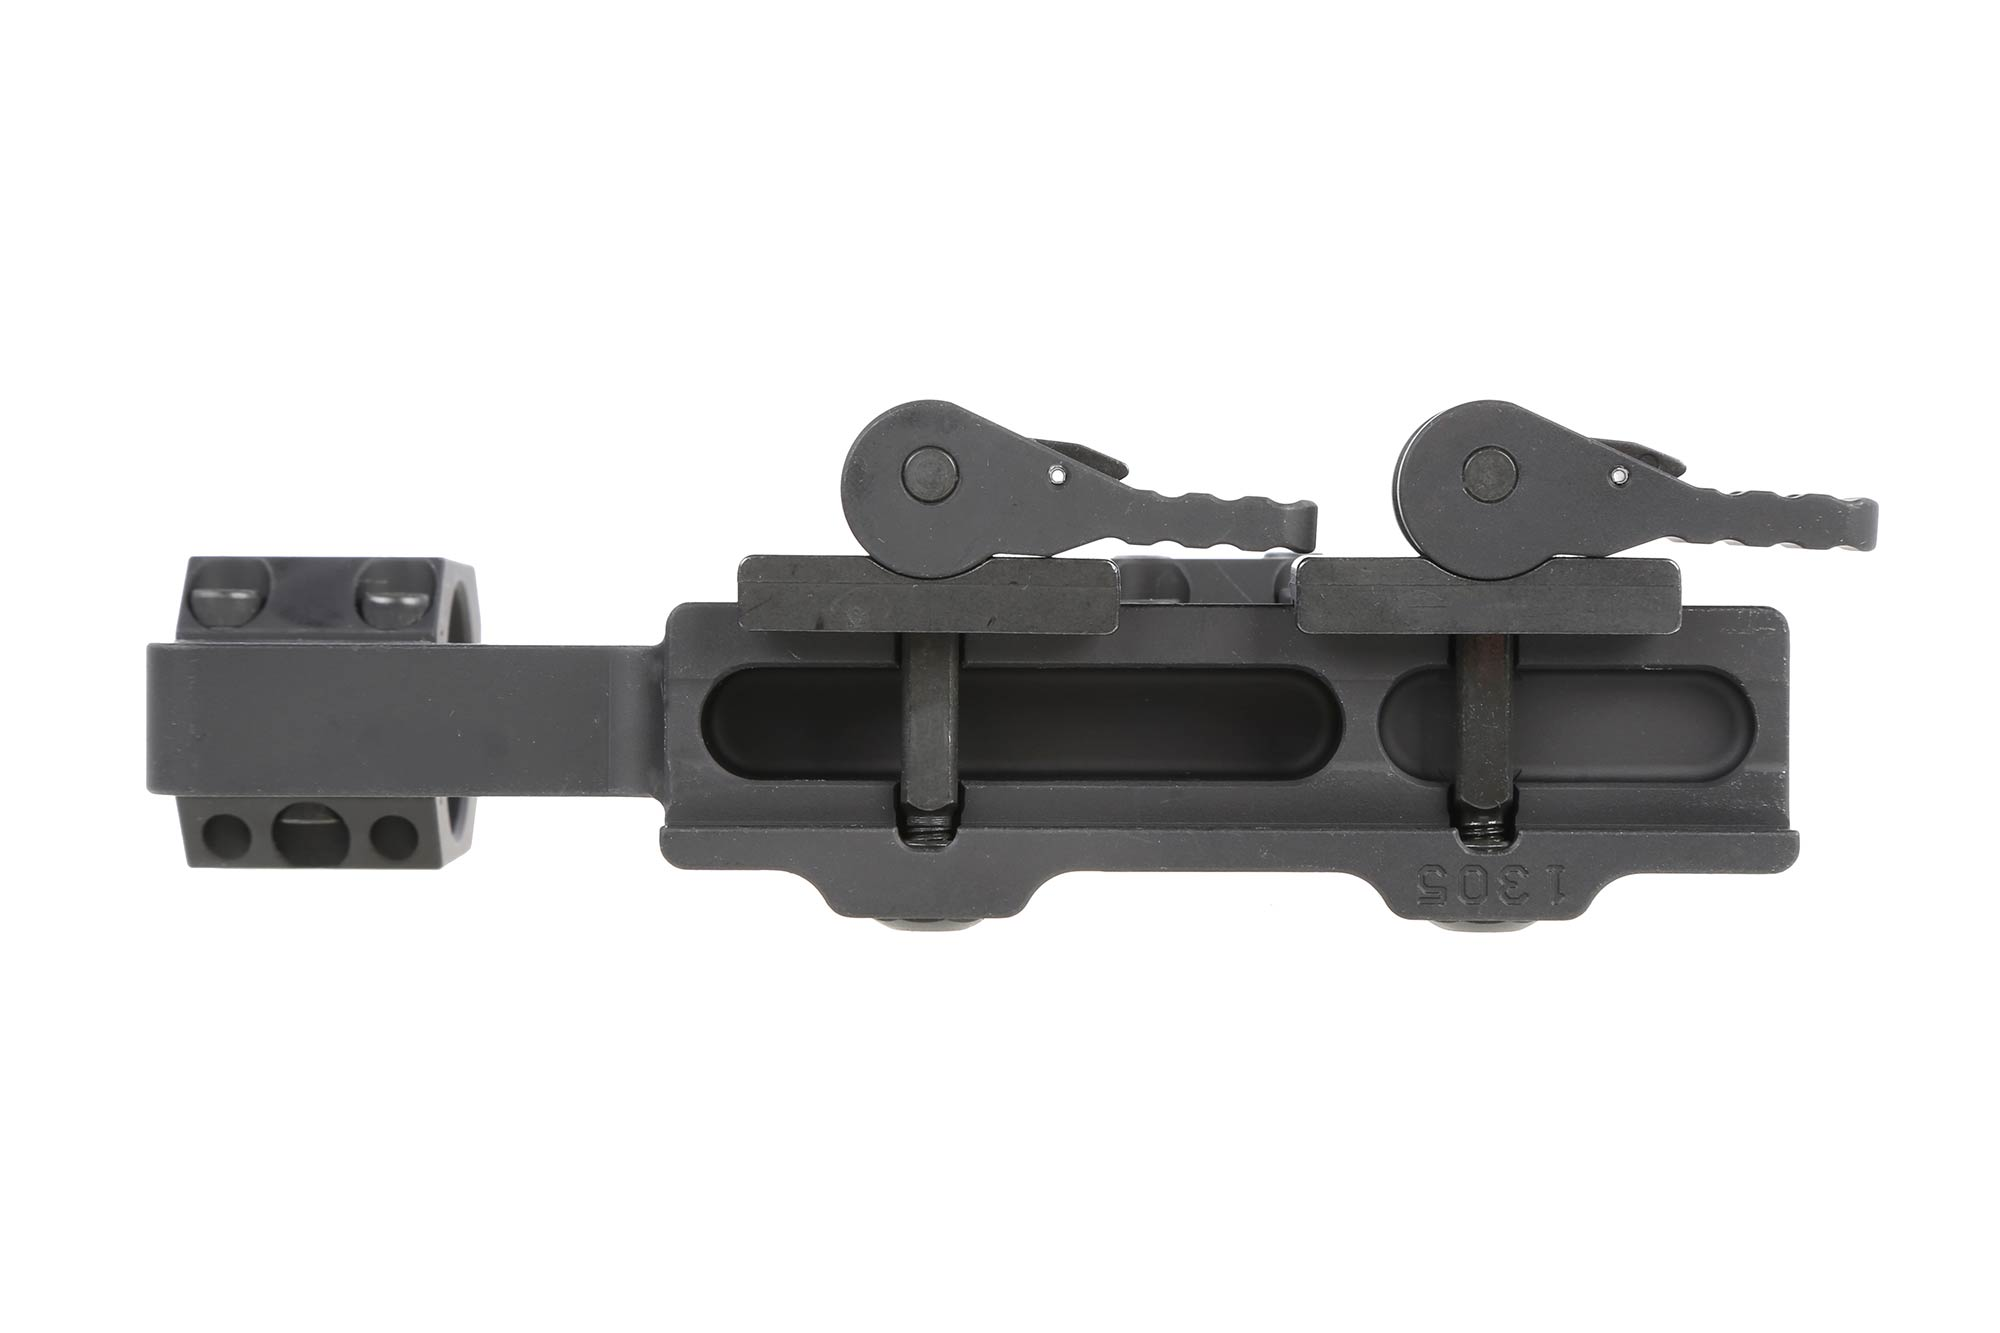 American Defense Recon High scope mount for 1 scopes feautres dual QD levers with square lugs for extra strength.